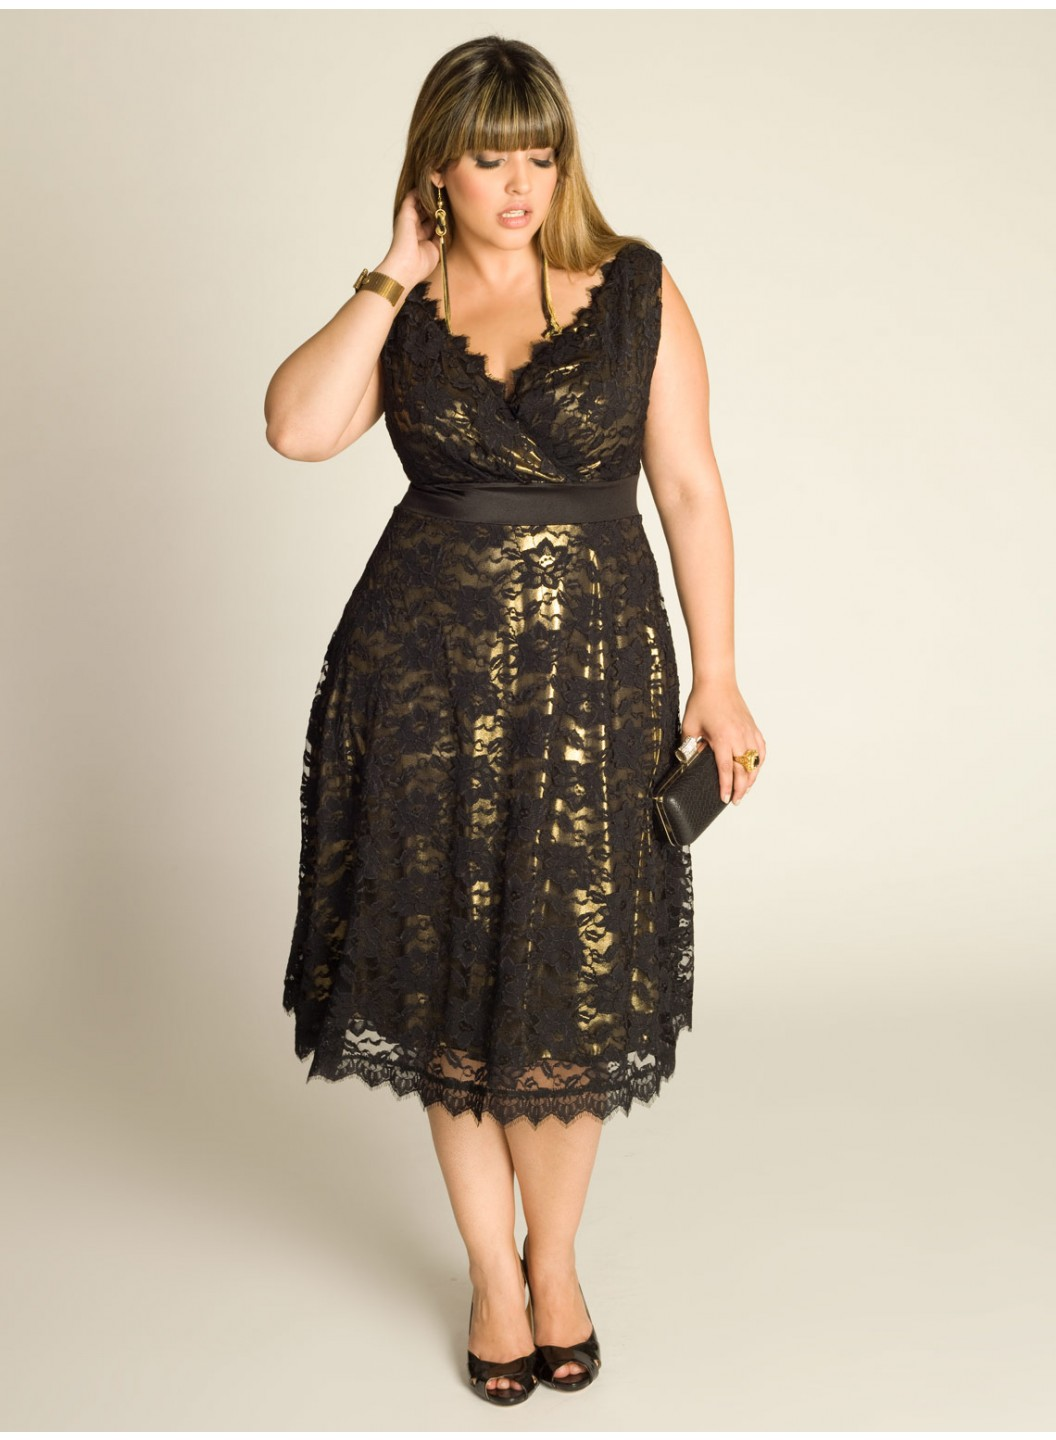 15 Plus Size Holiday Dresses To Get You Through The Season